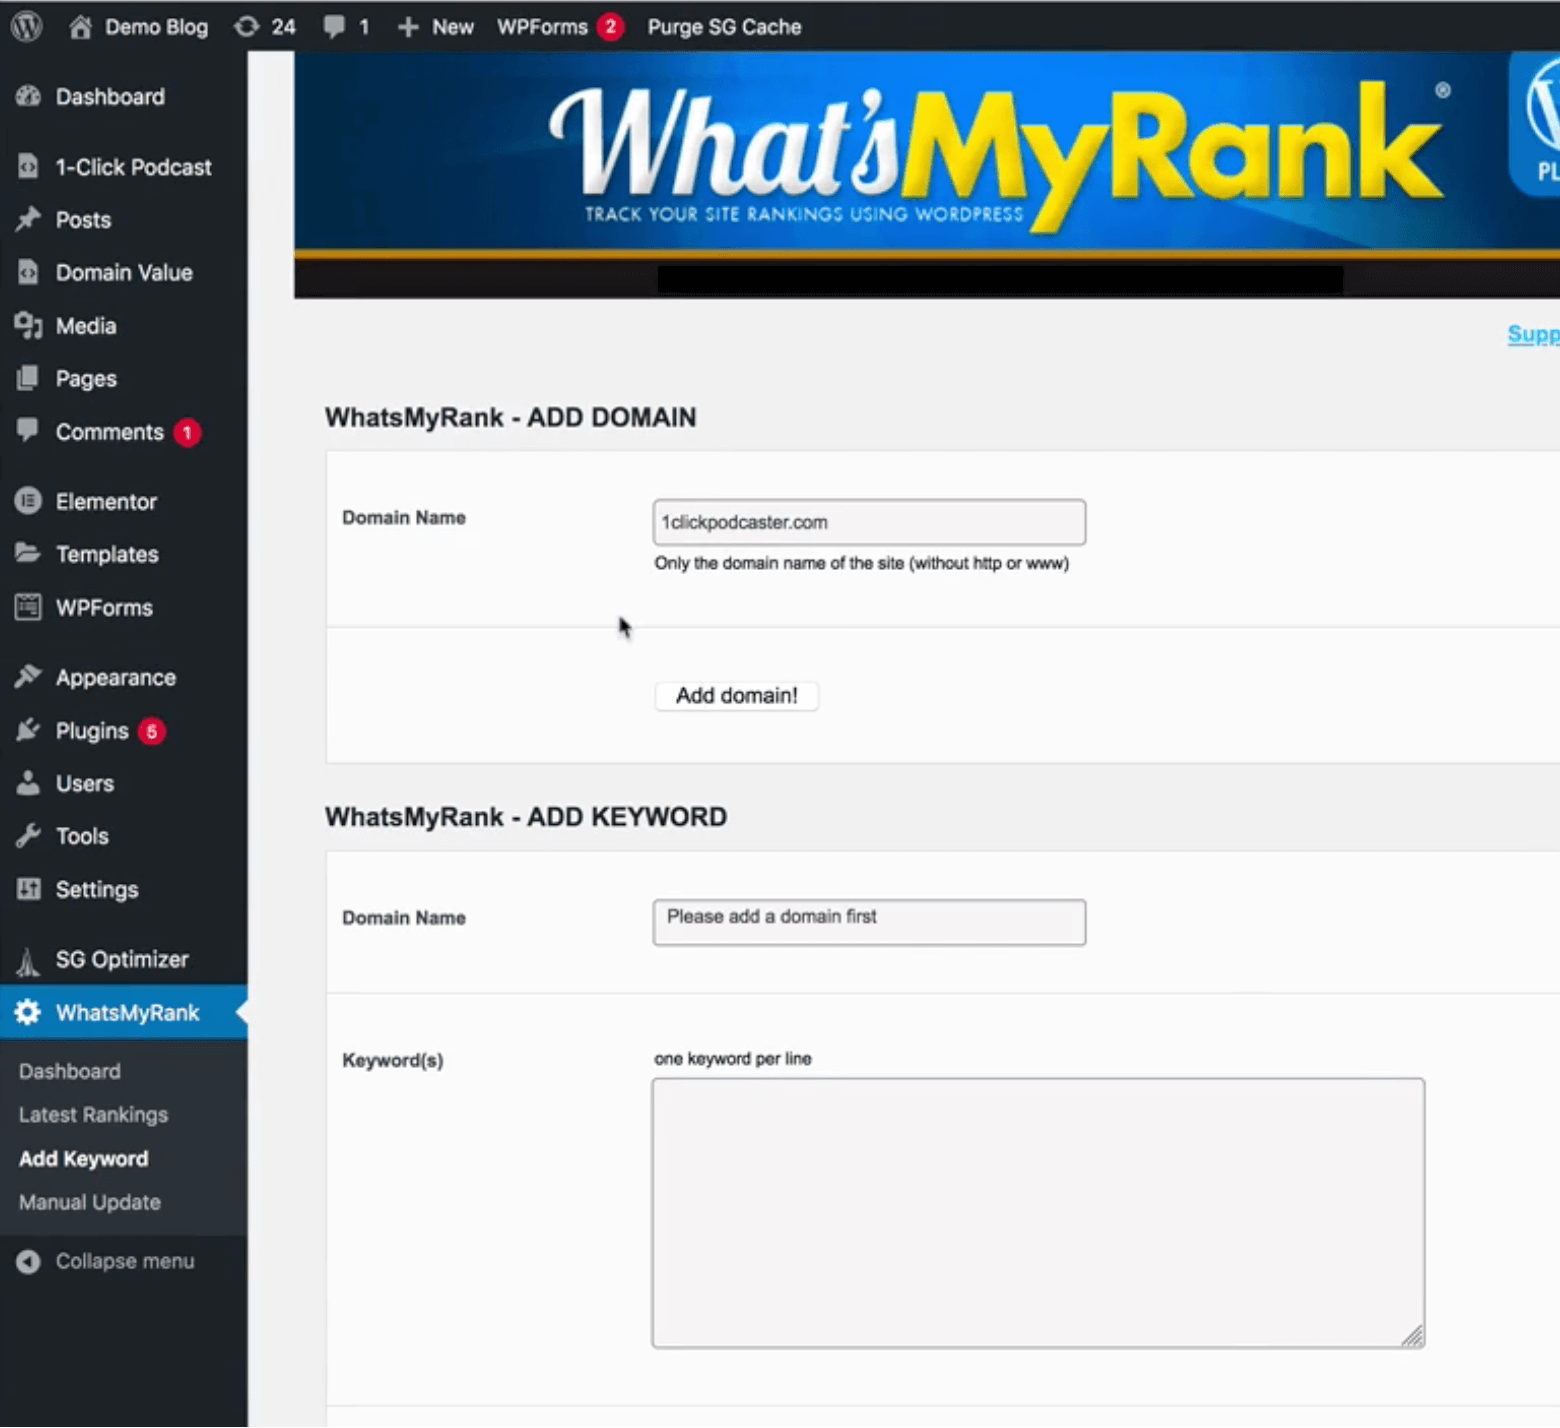 whats my rank review